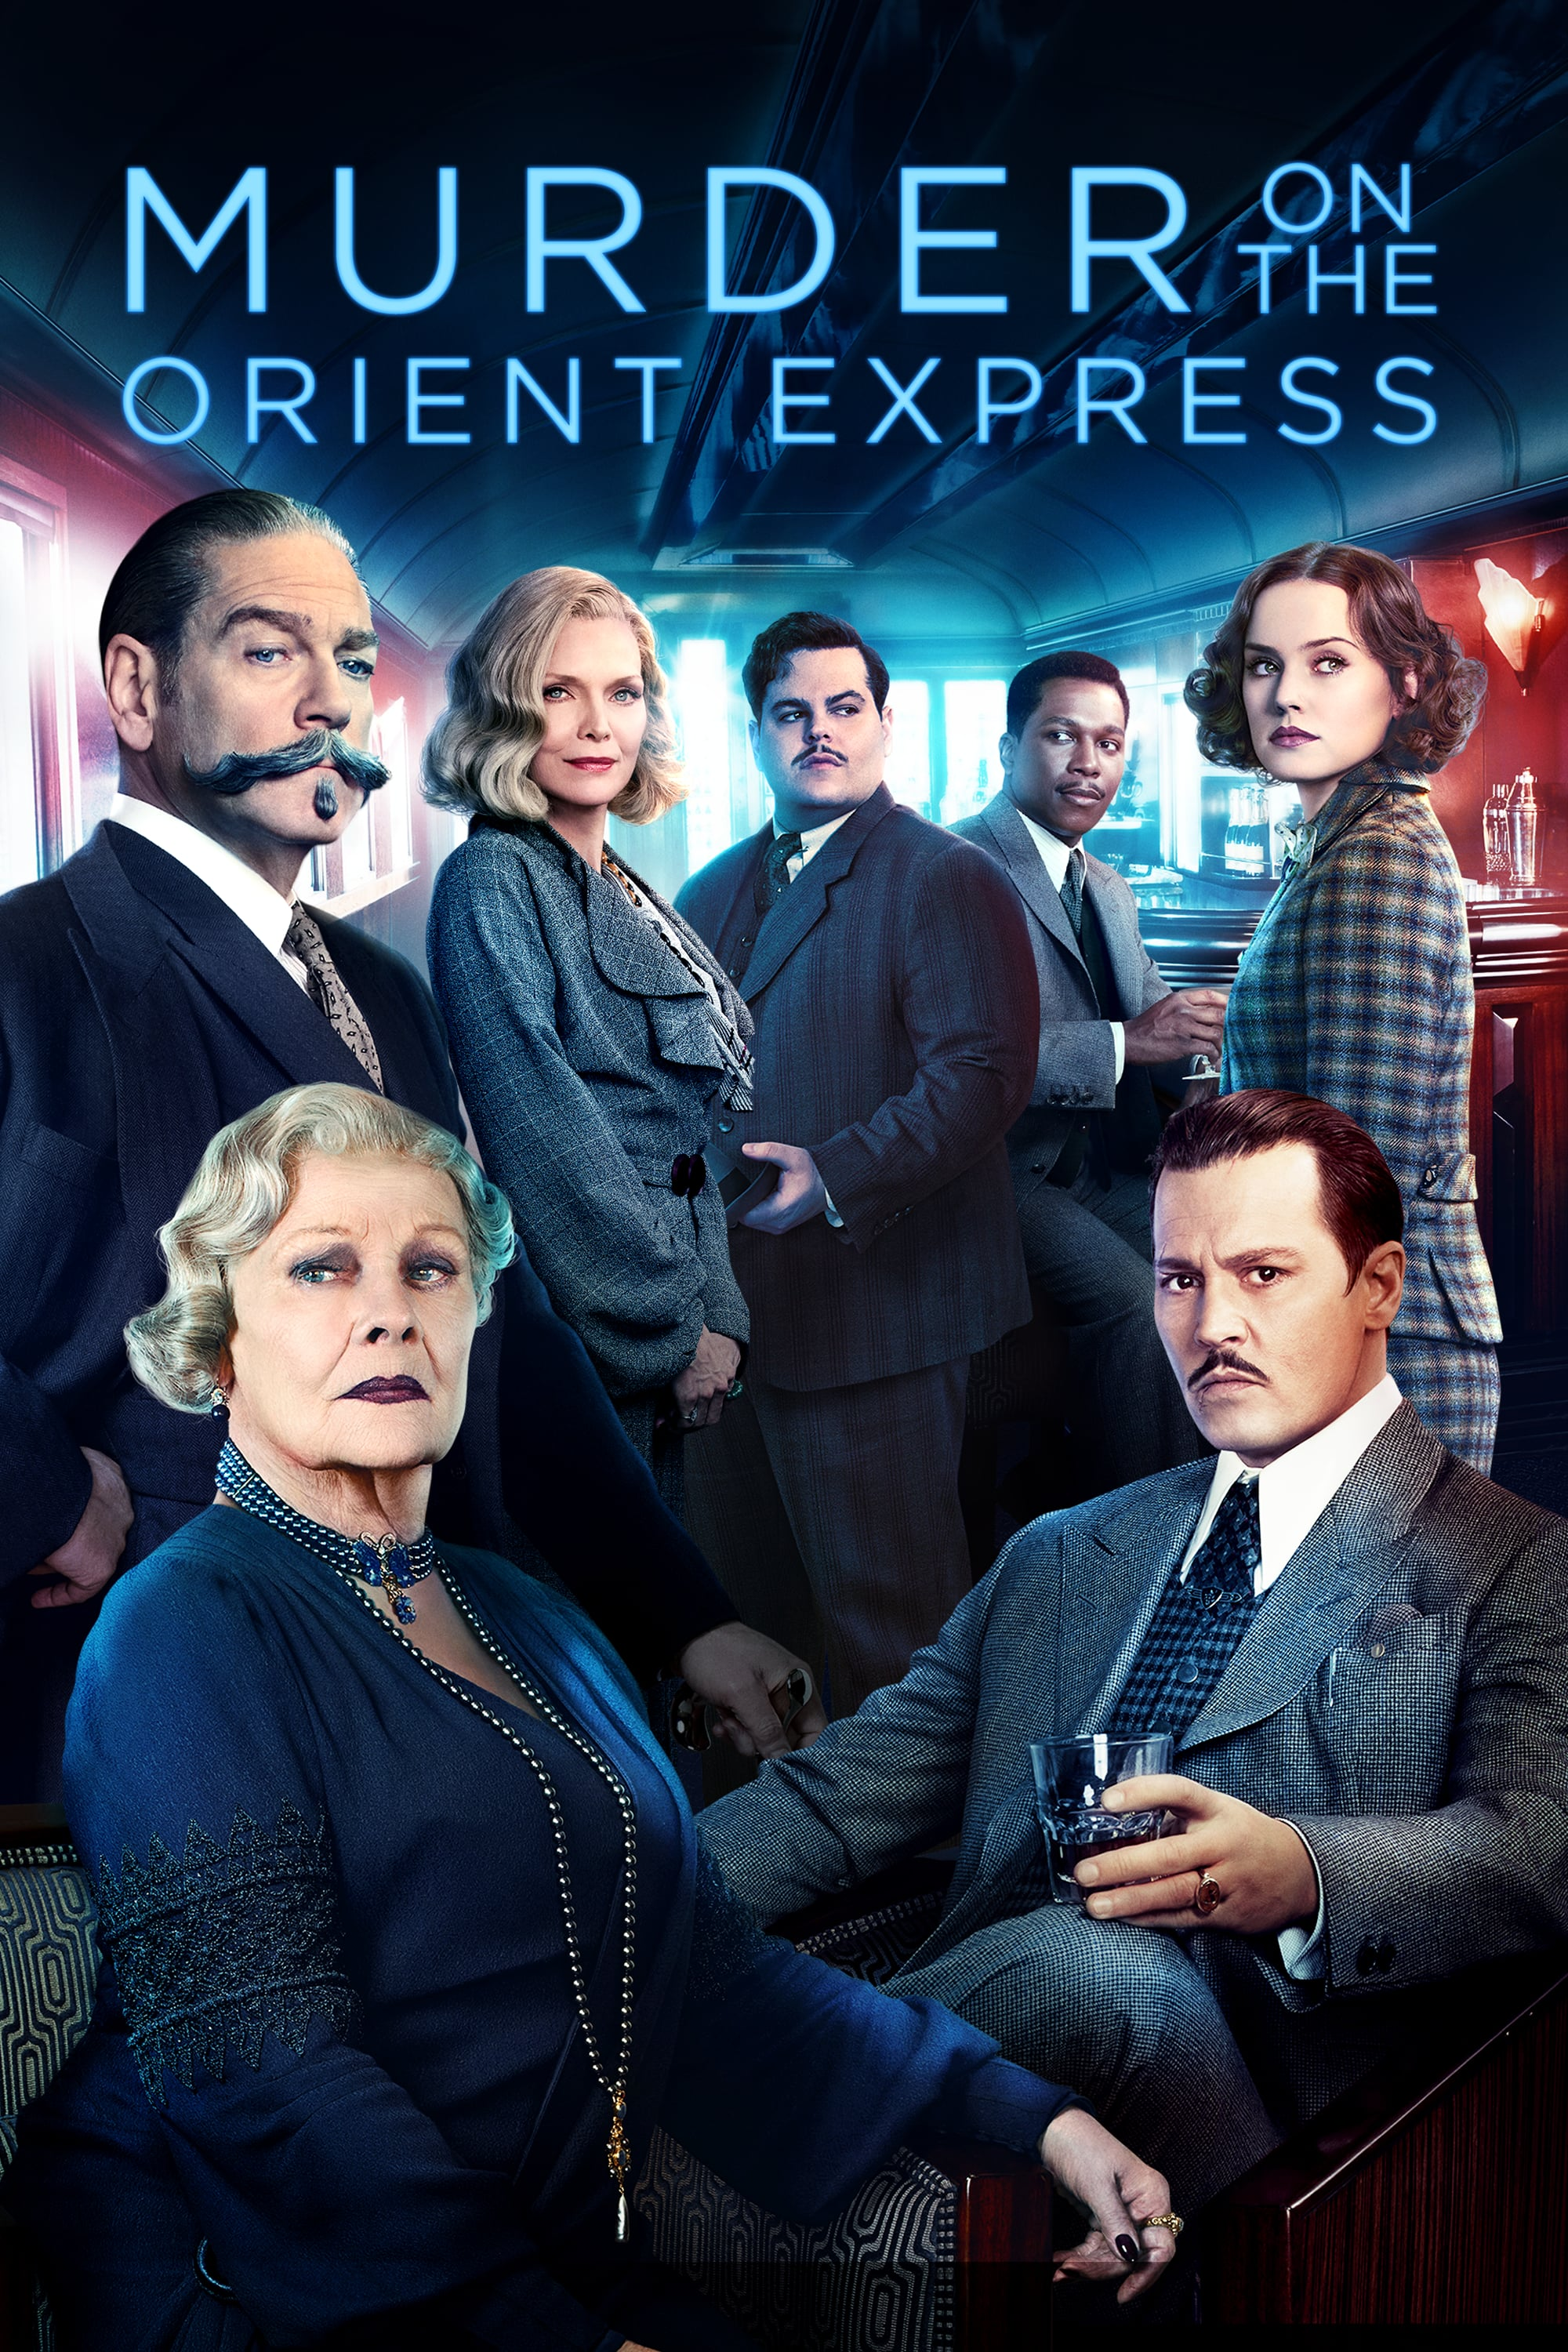 murder on the orient express Kenneth branagh's take on agatha christie's eccentric detective is a keeper, though his persona proves more entertaining than the mystery.